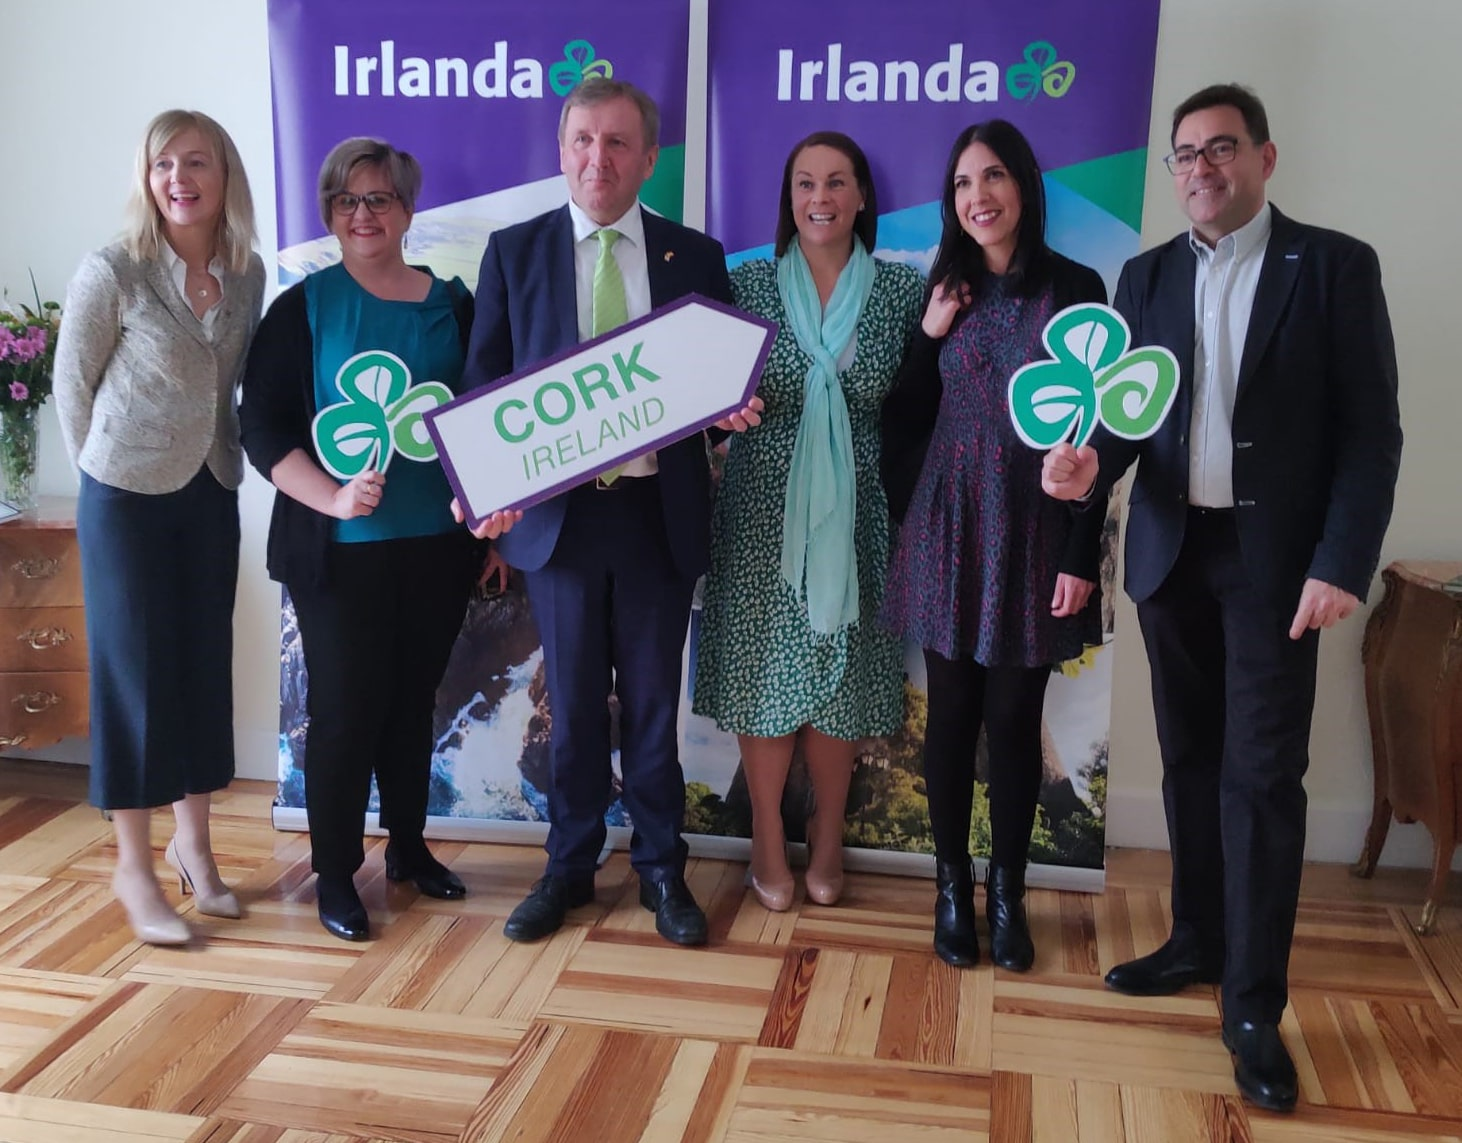 Minister Michael Creed lends a hand to boost tourism from Spain